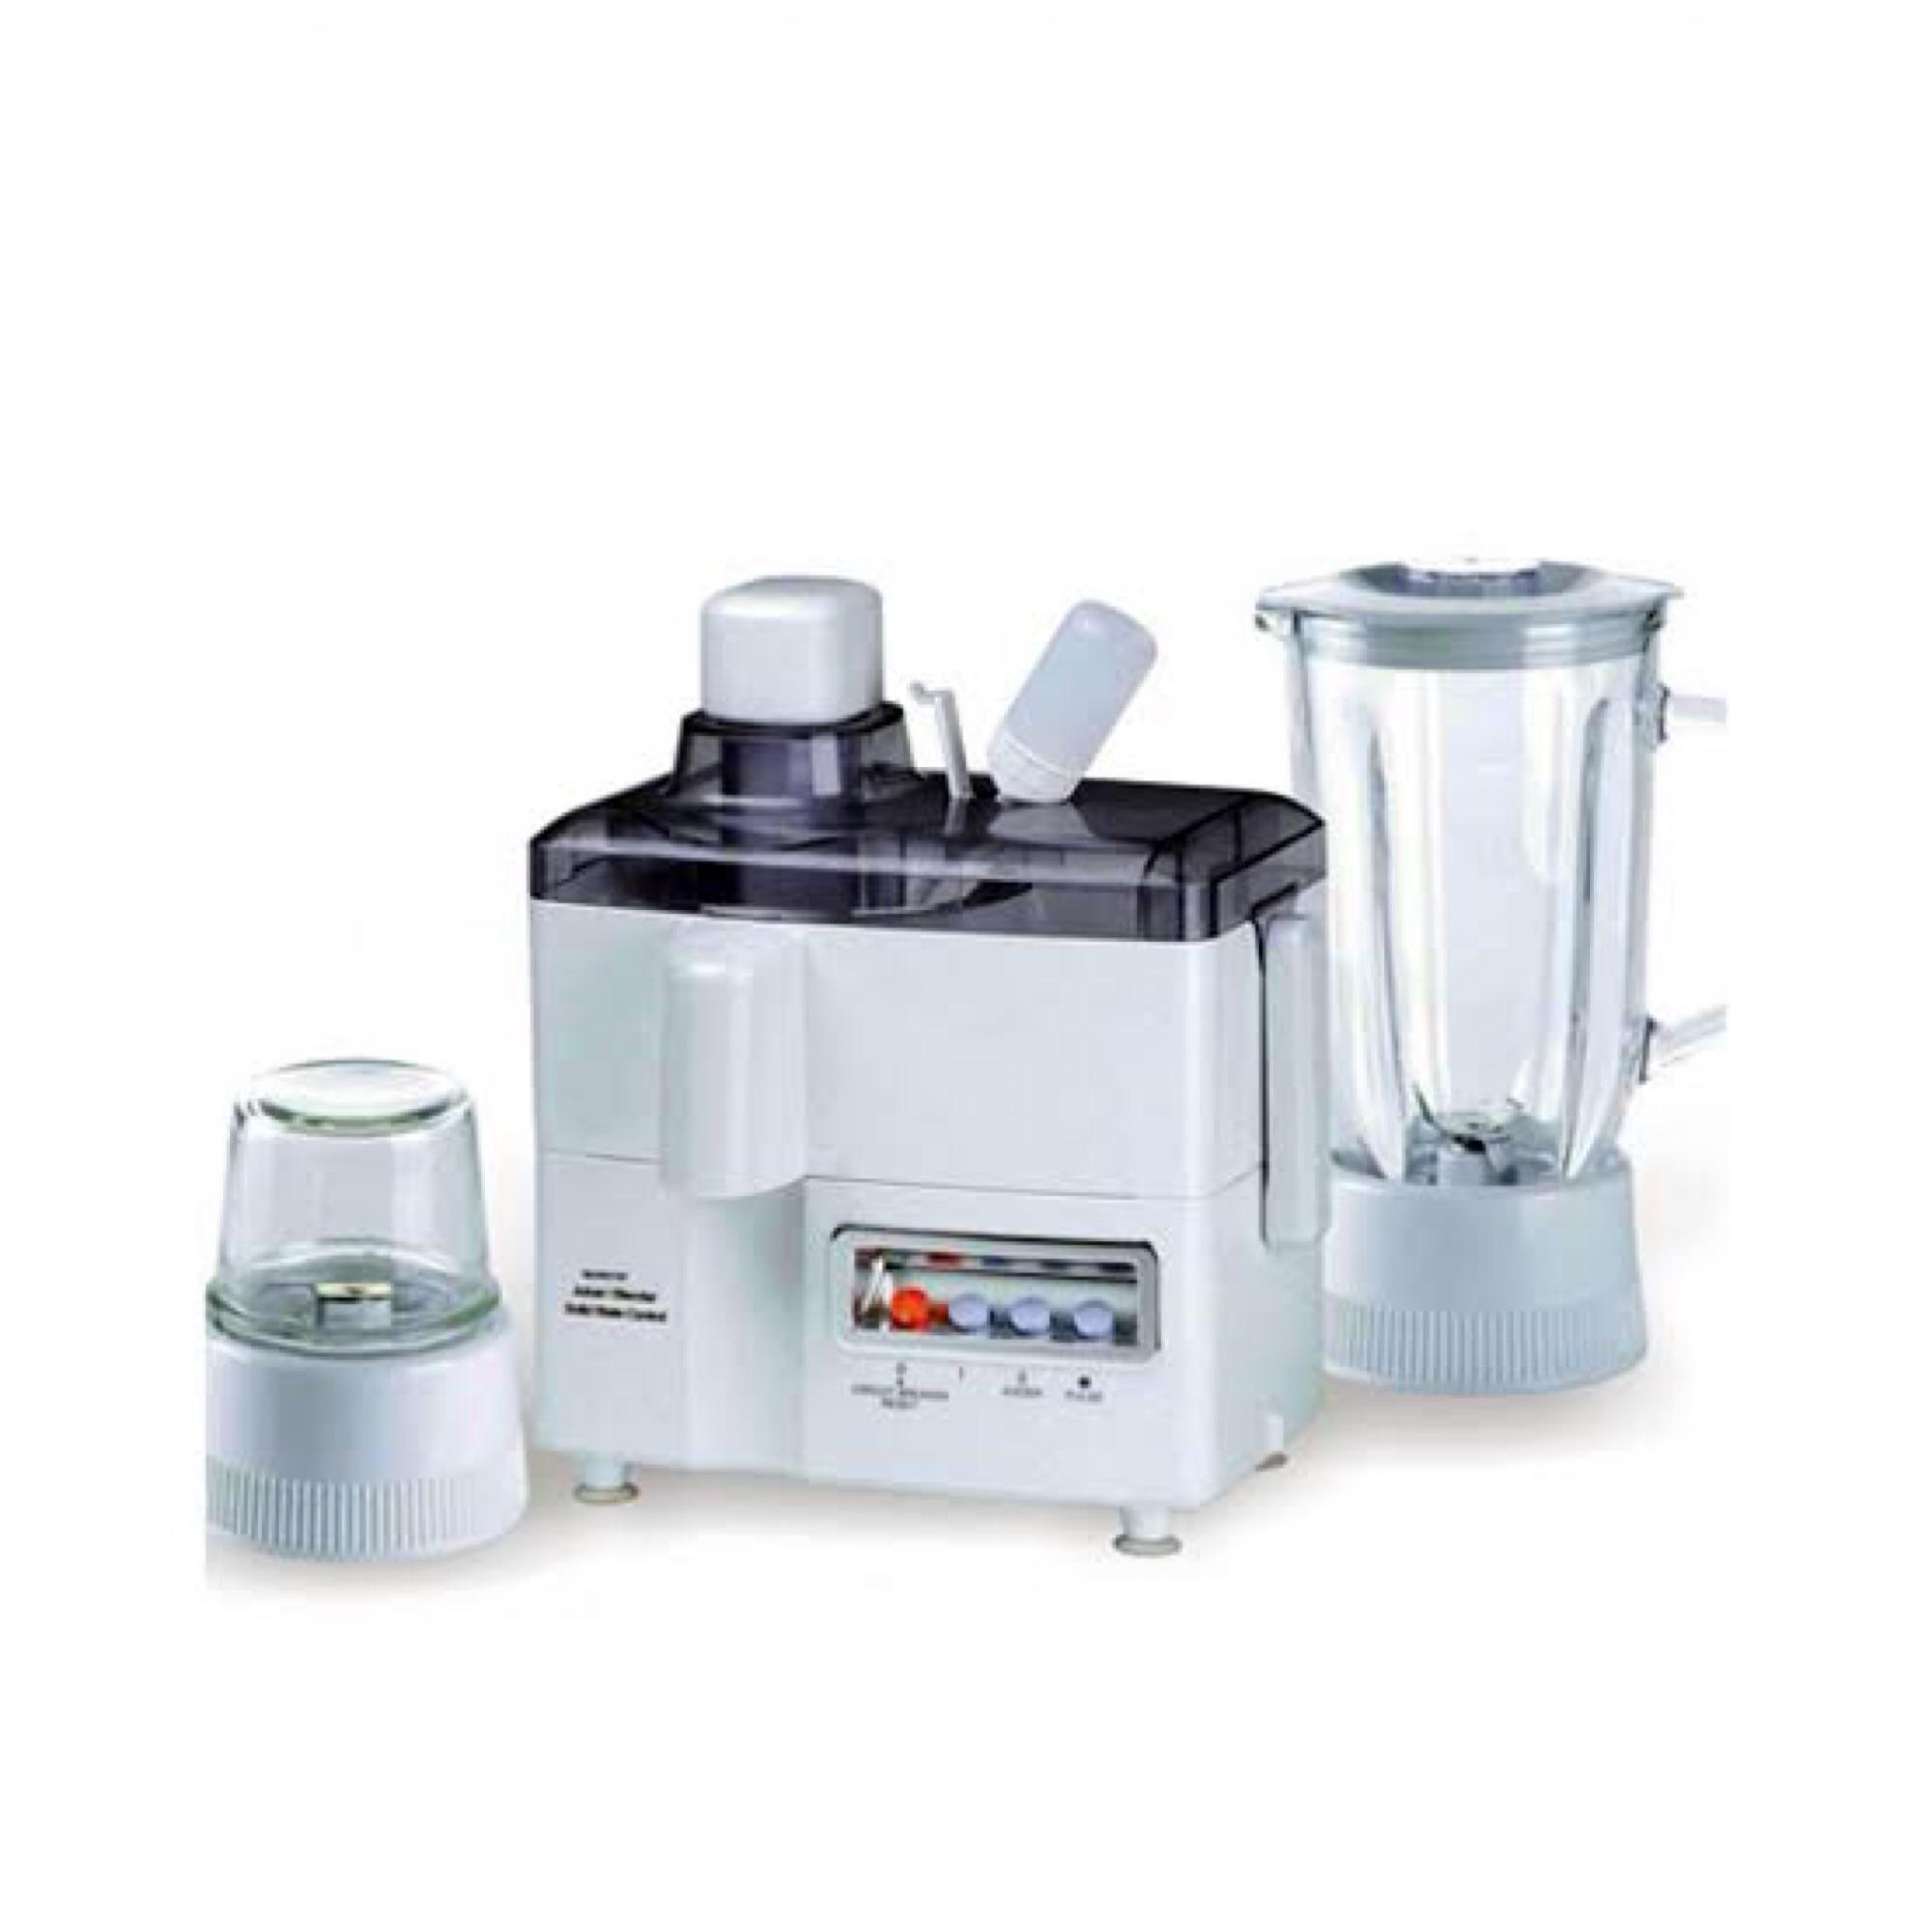 Juicers Machines Online In Pakistan Mixer Natonal Omega Nd National 3 1 Juicer Blender Full 5 Years Warranty